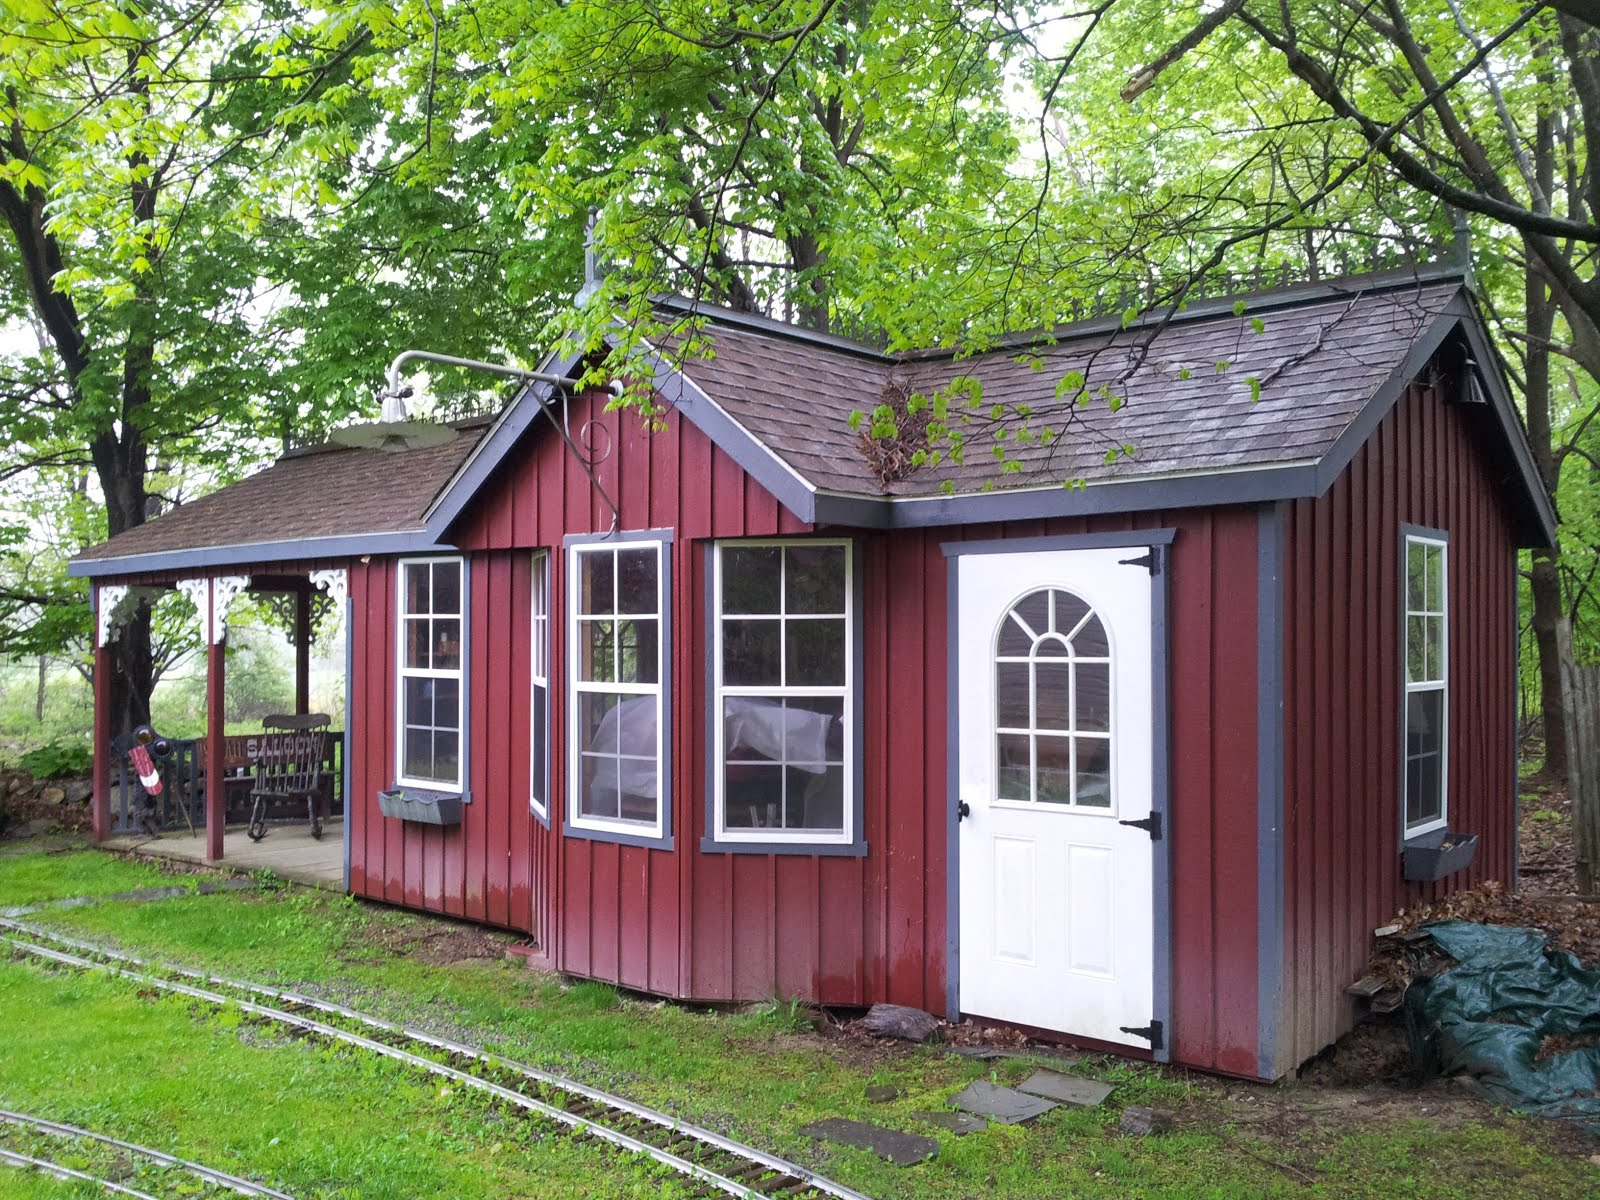 Where To Buy Amish Built Sheds Near Me And How Can I Tell